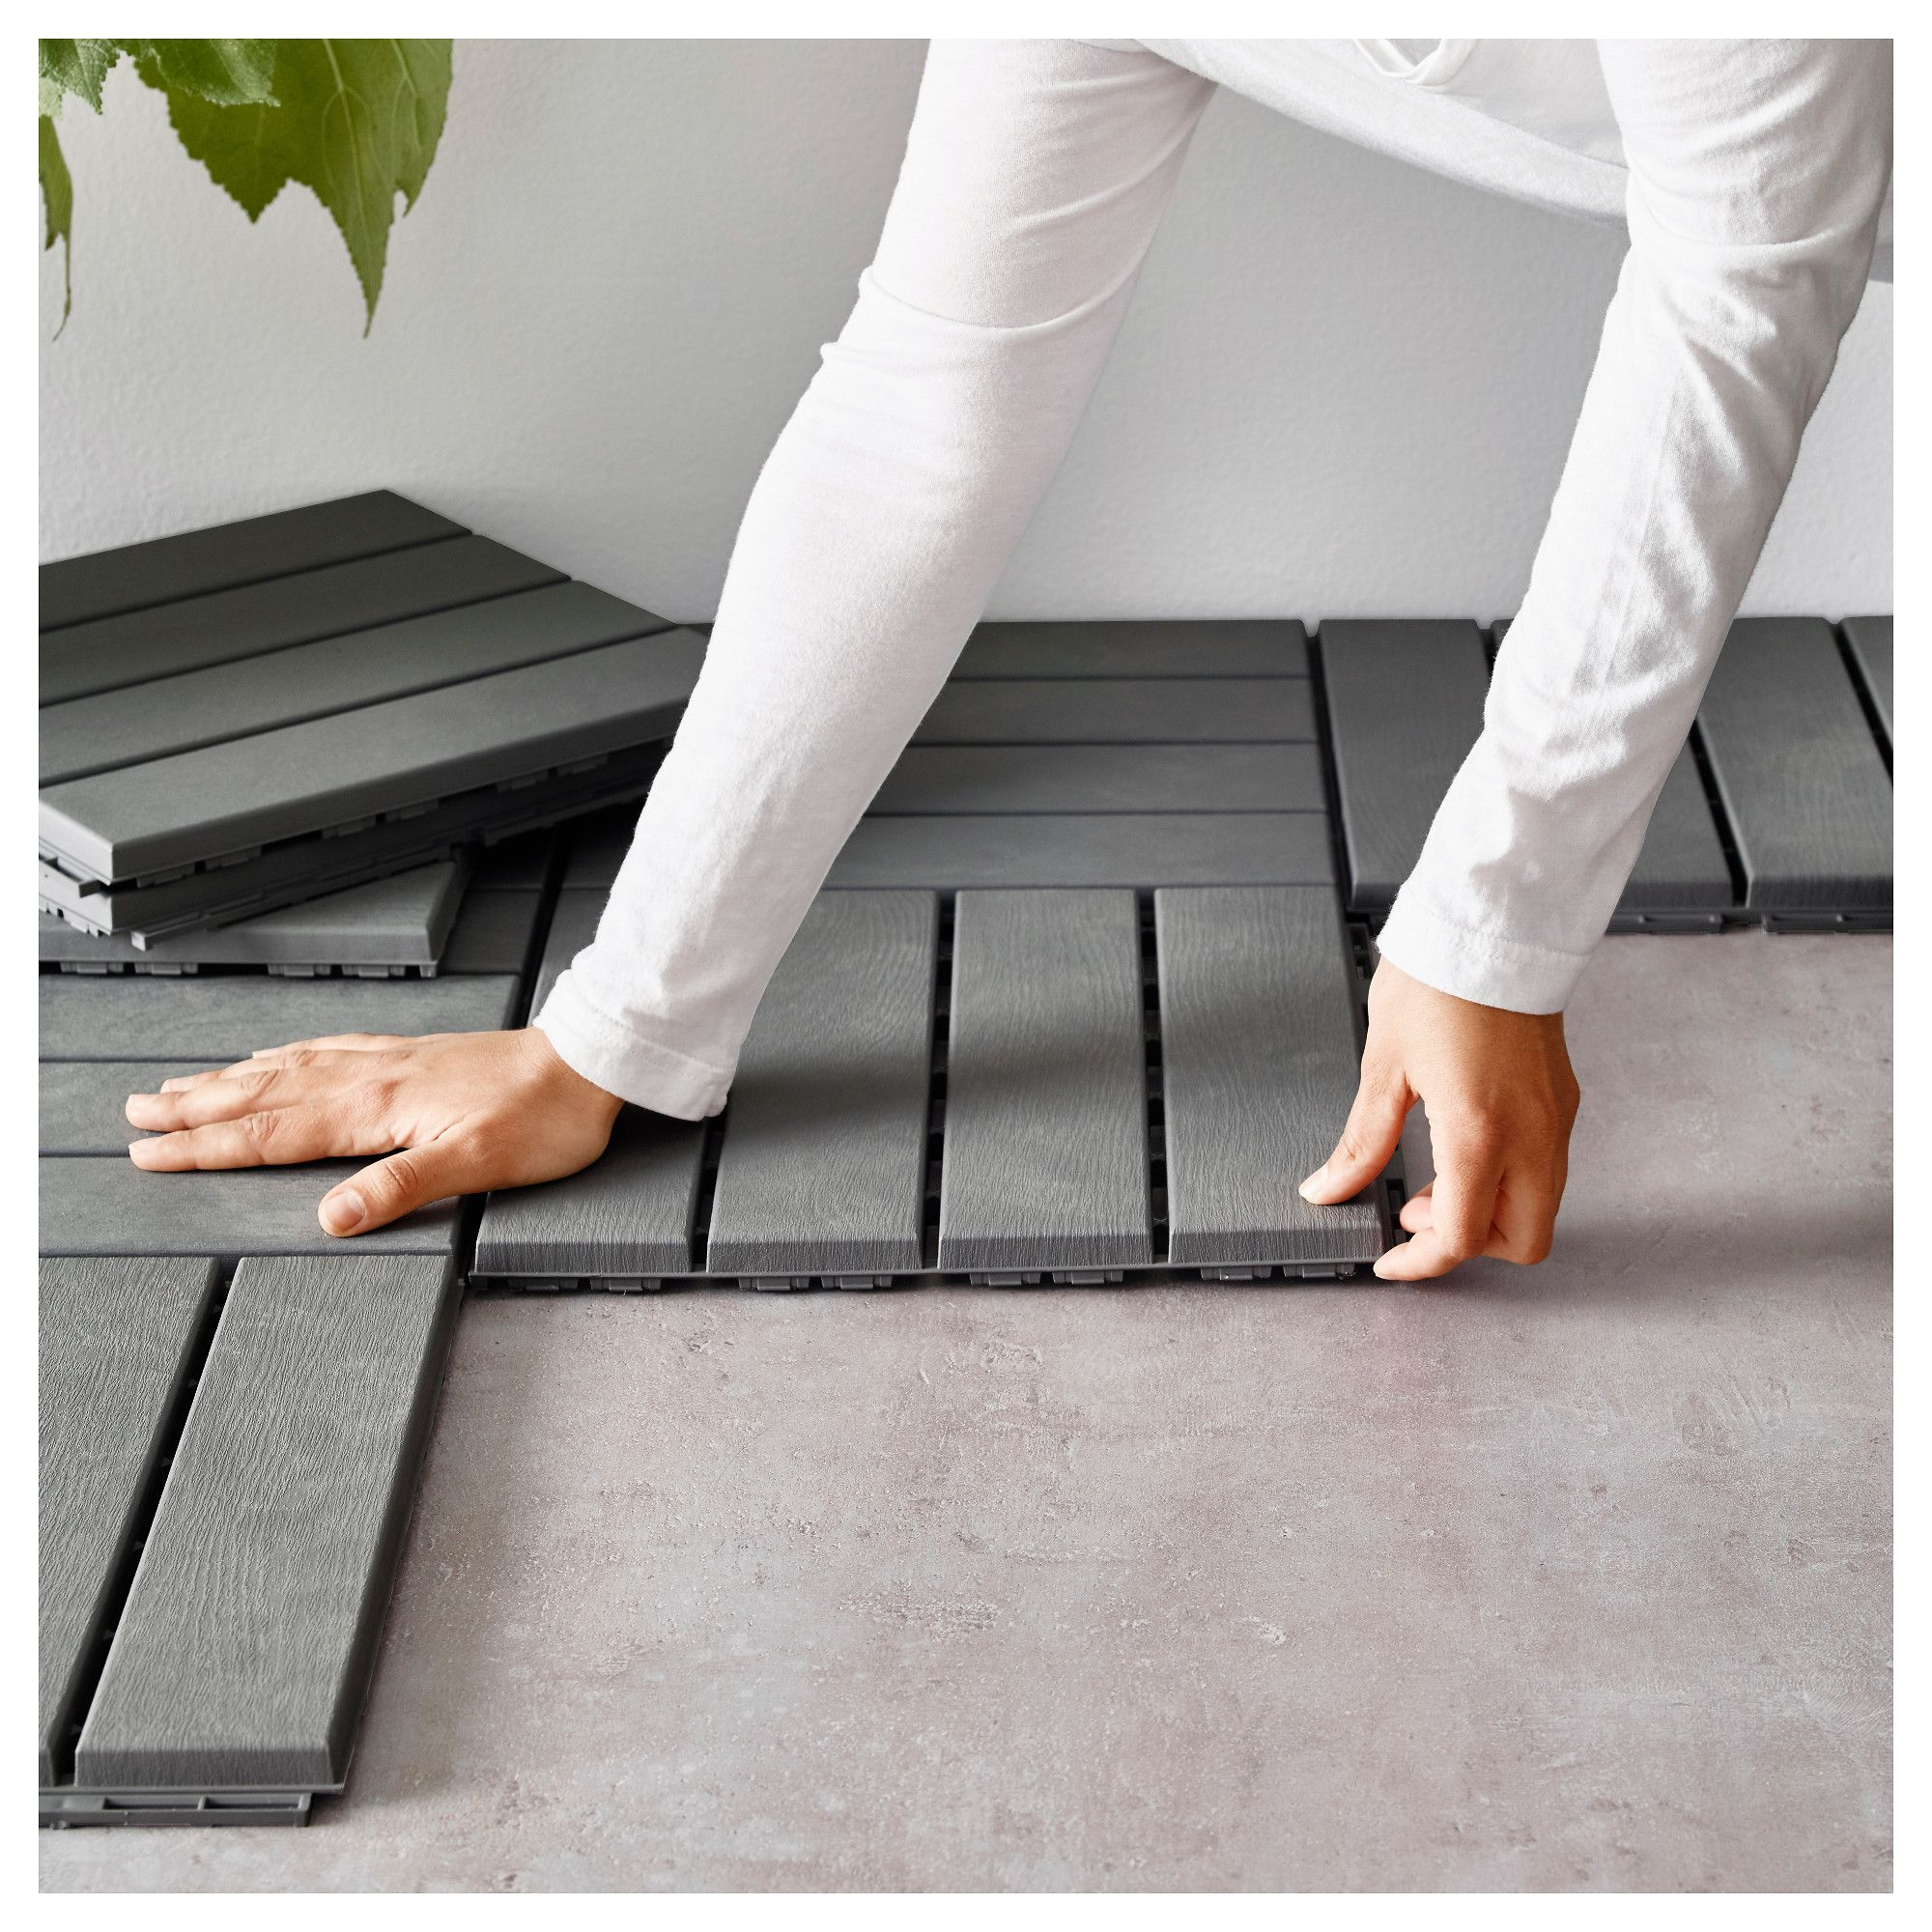 IKEA RUNNEN Floor Decking Outdoor Makes It Easy To Refresh Your Terrace Or Balcony